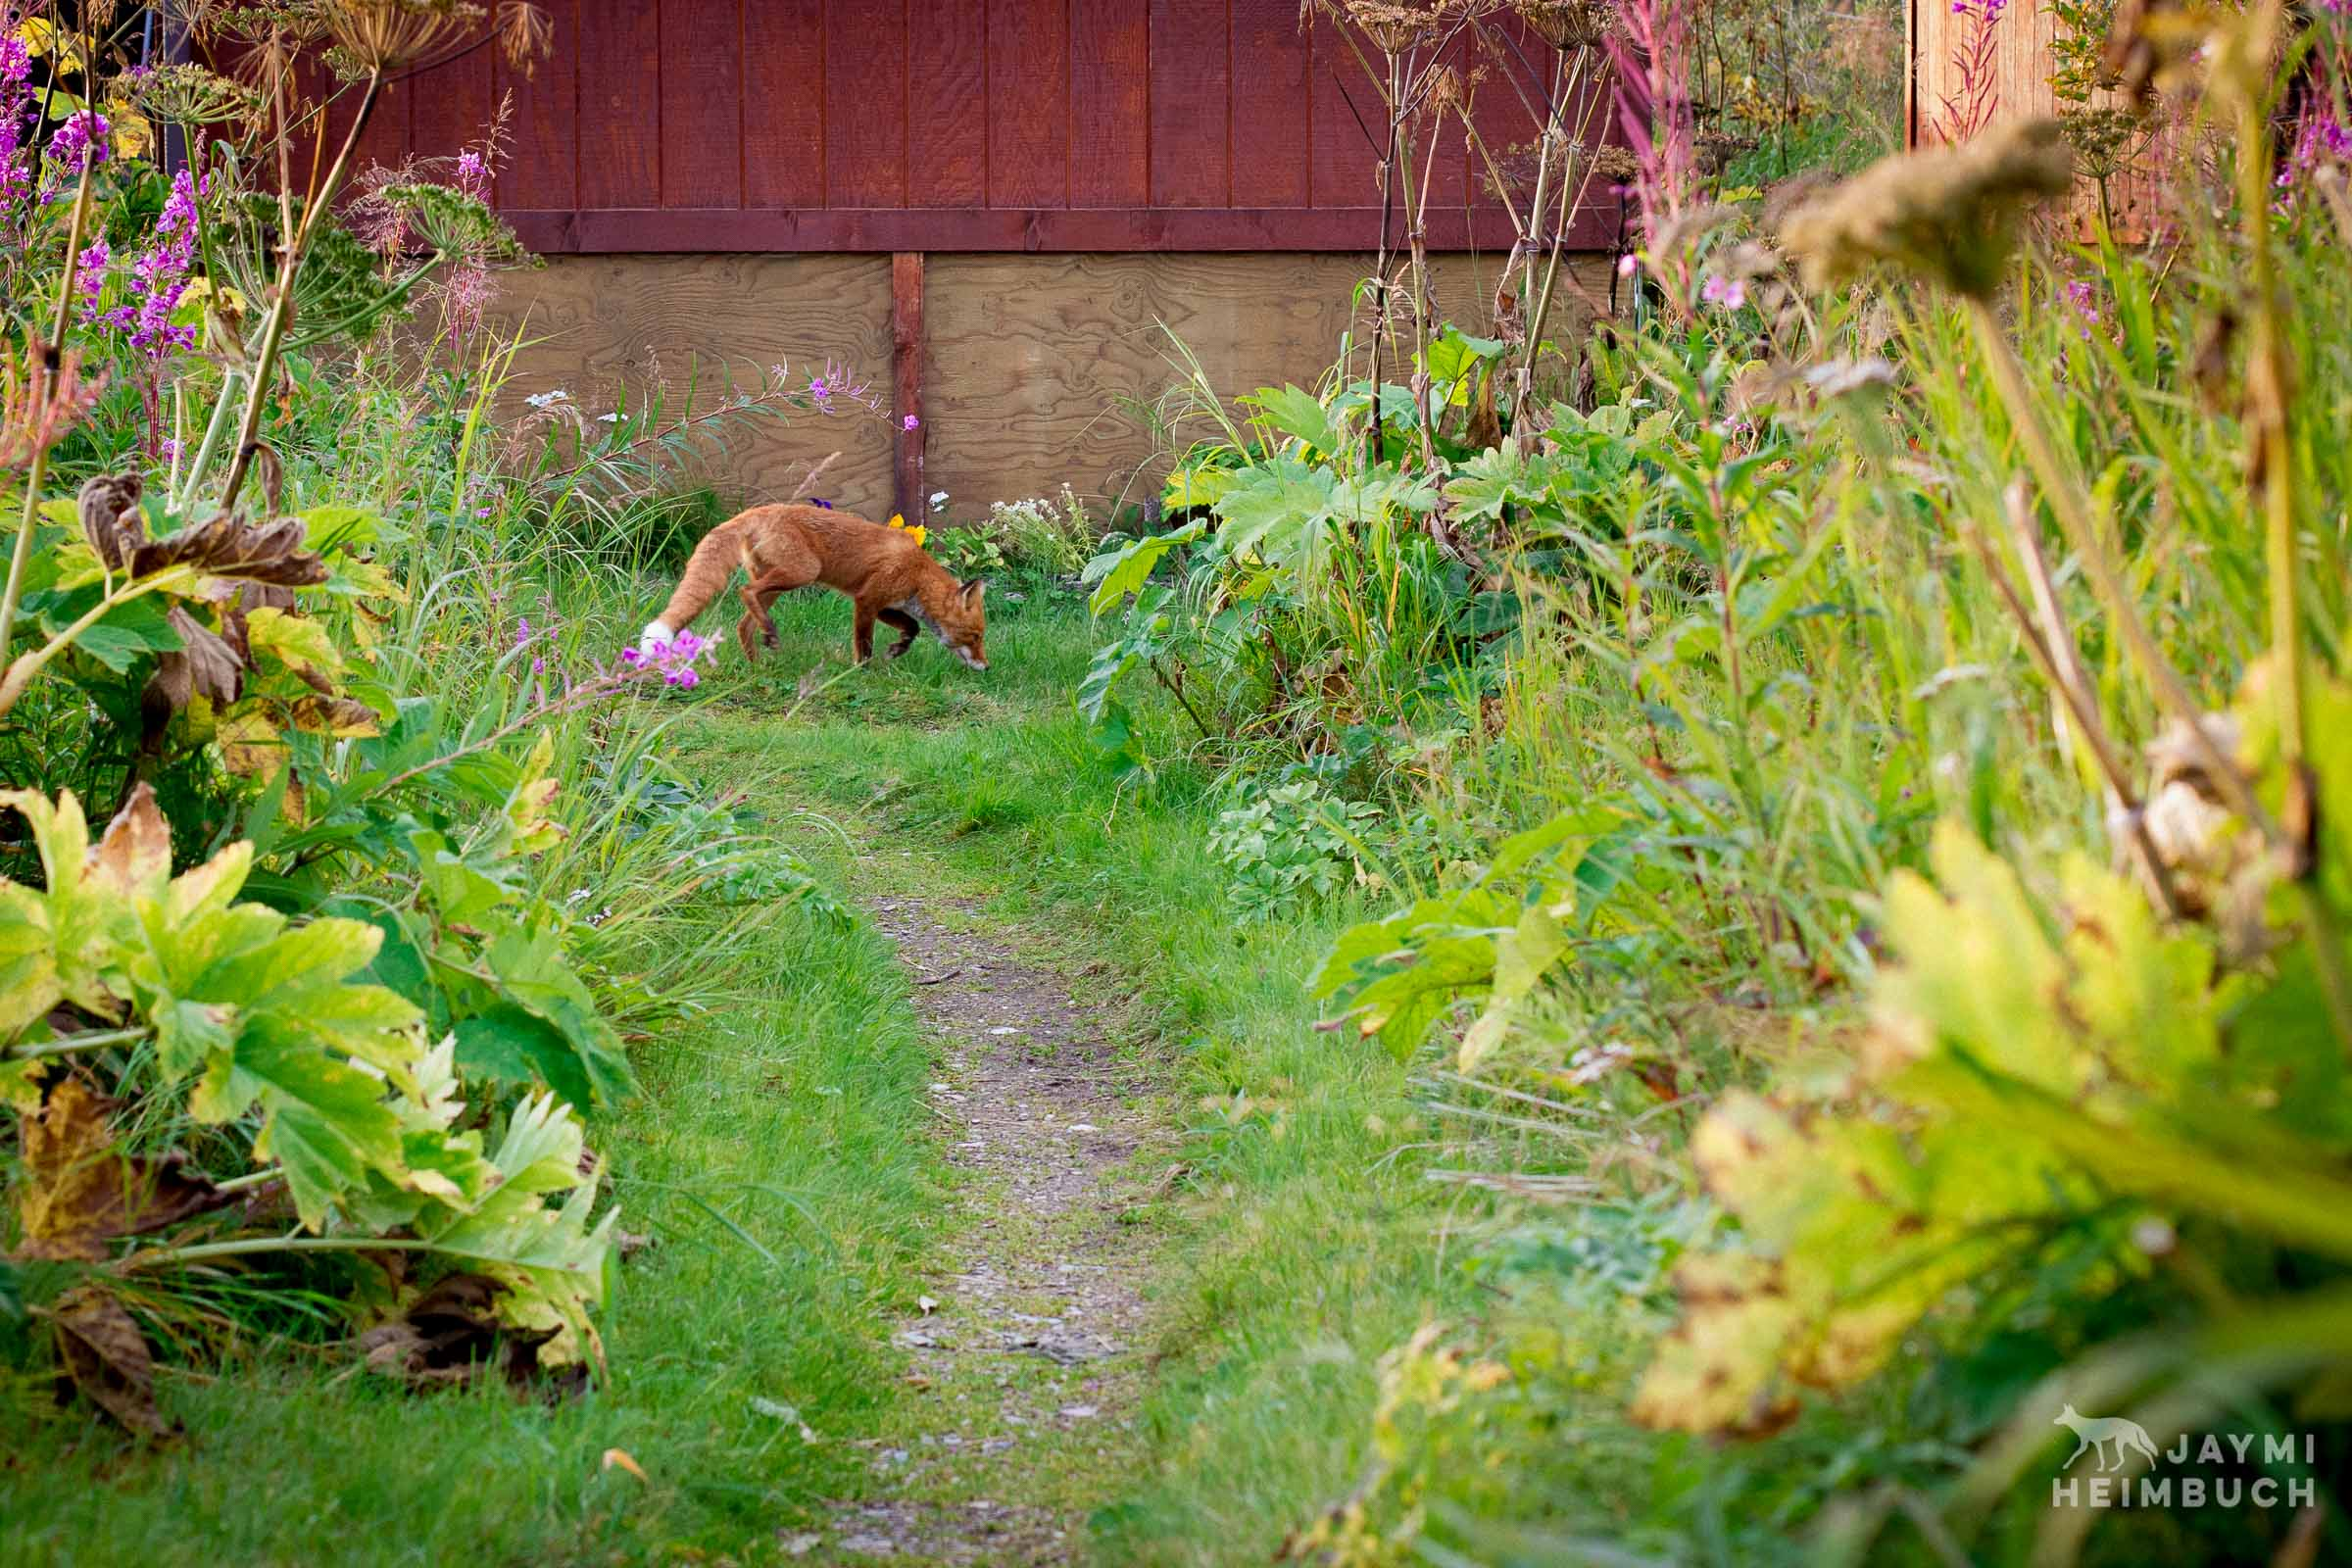 red fox in yard